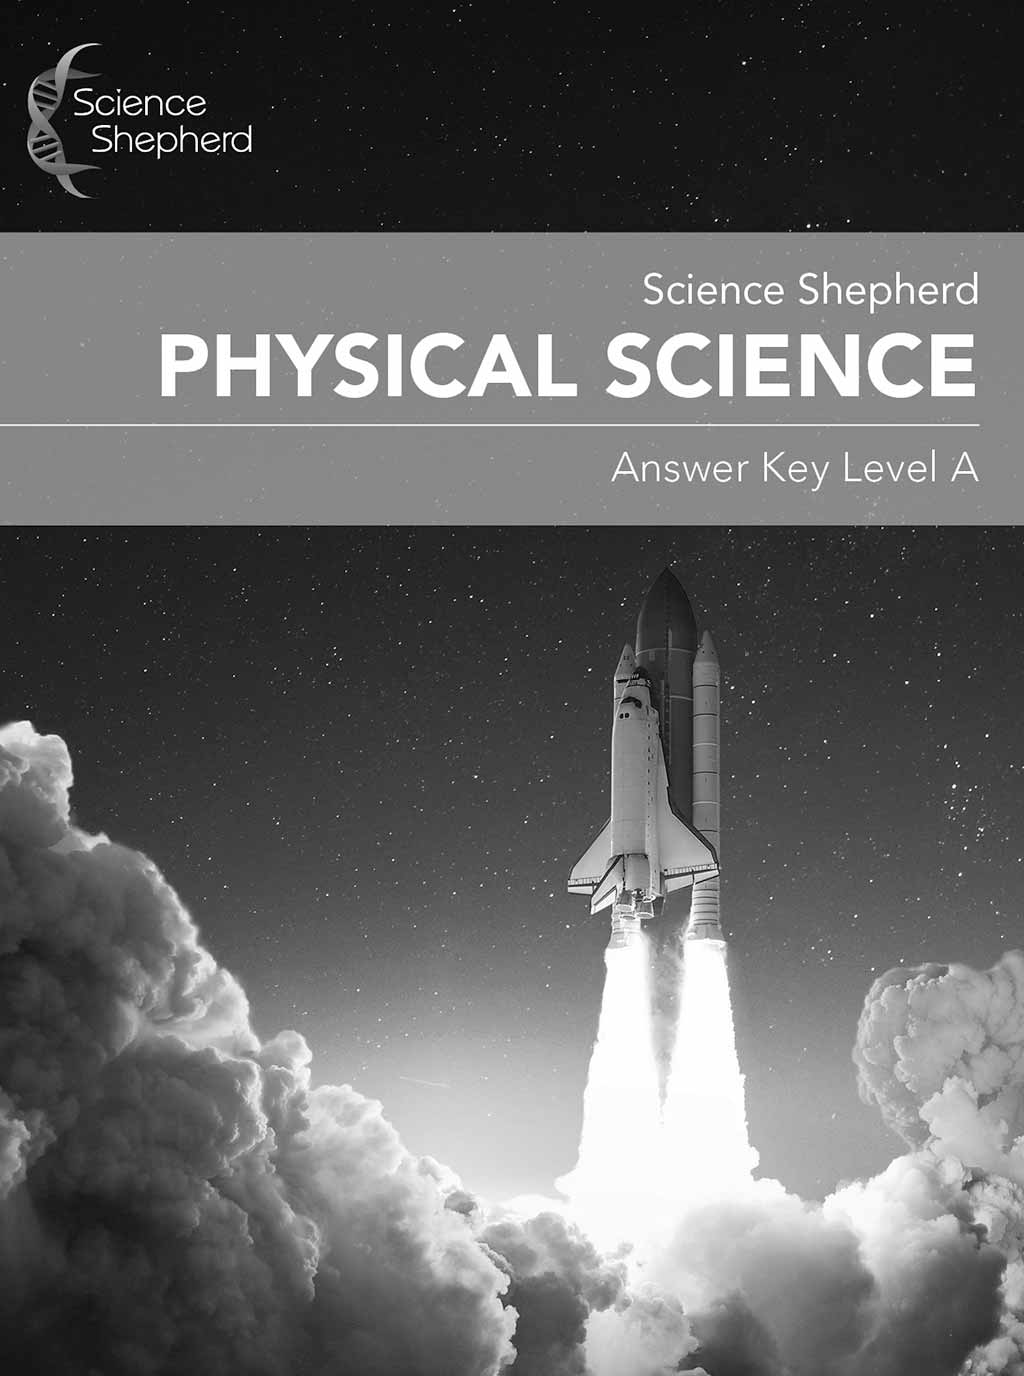 Physical Science 3rd grade homeschool science answer key cover